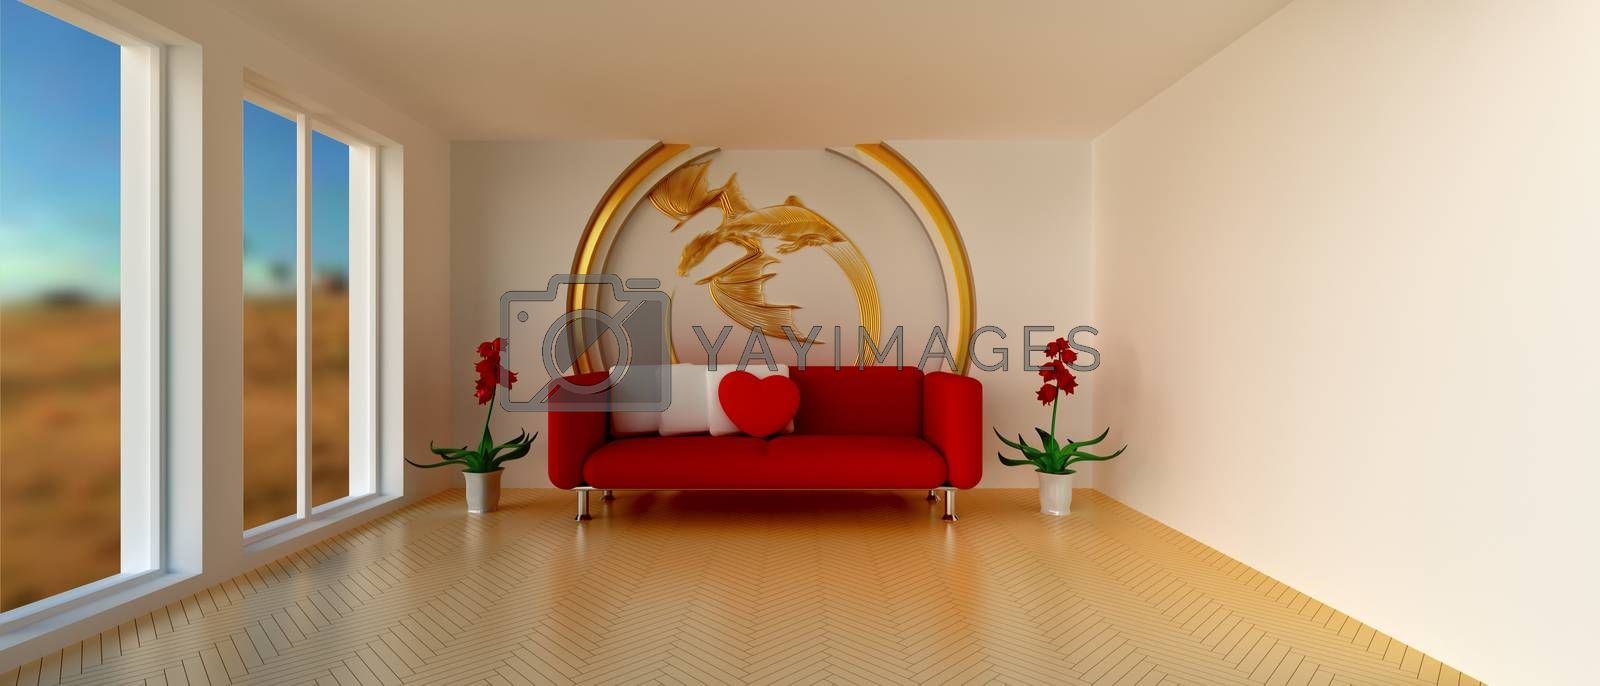 Empty sunny stylish minimalist modern living room with red sofa and white cushion, red heart-shaped pillow, red flowers and golden dragon decoration on the wall. 21:9 proportions. 3D rendering.